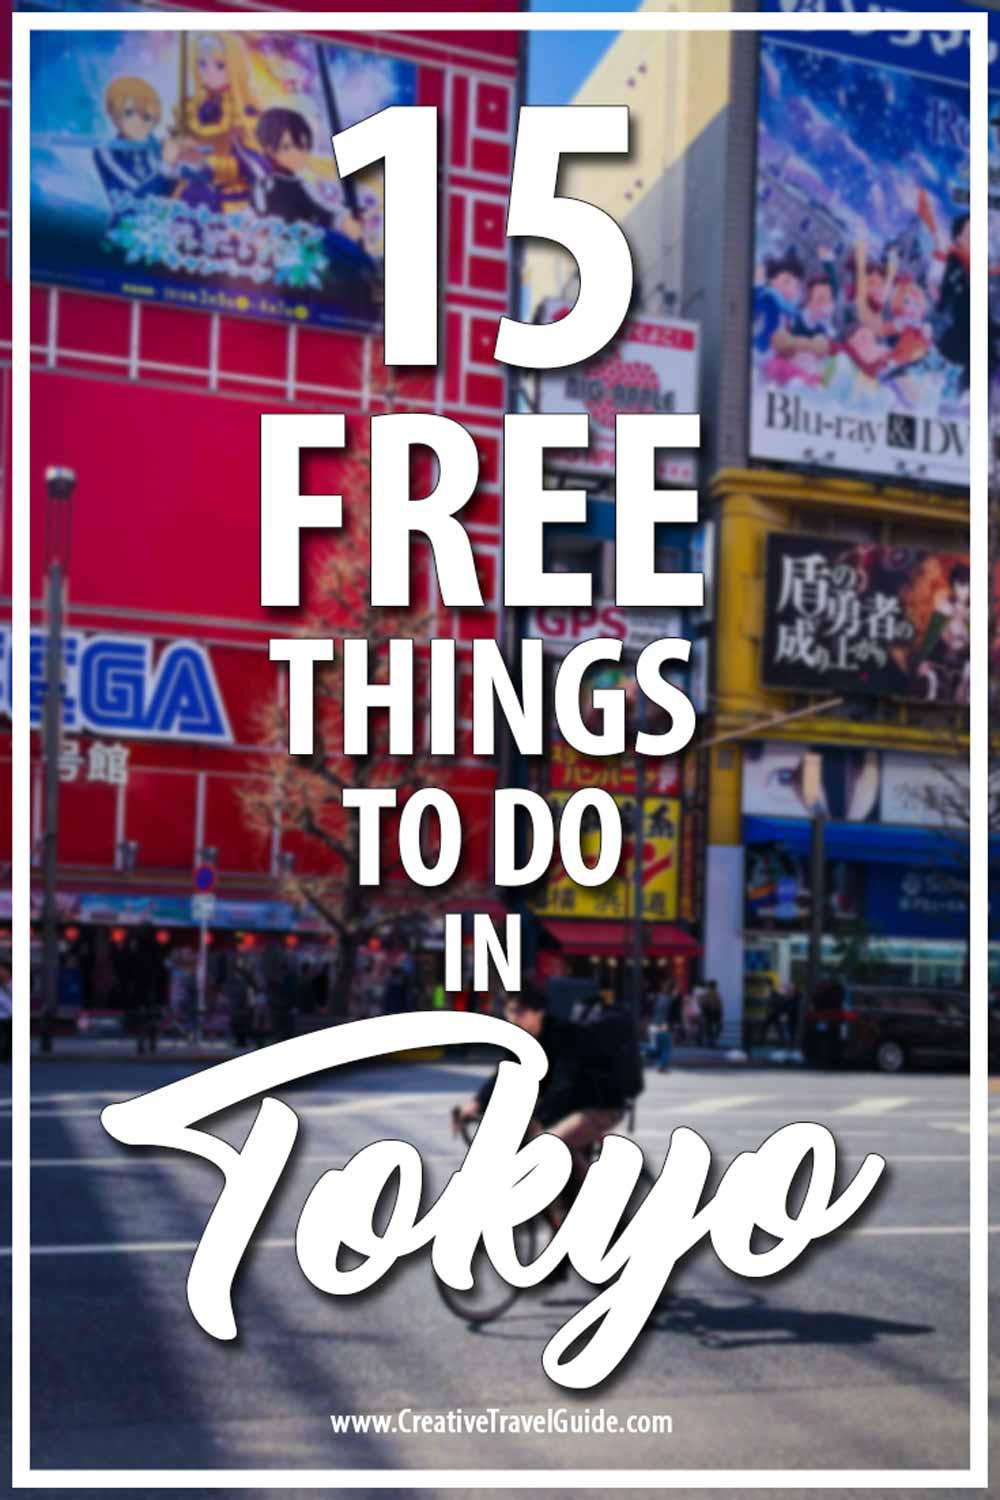 Free things to do in Tokyo, Japan